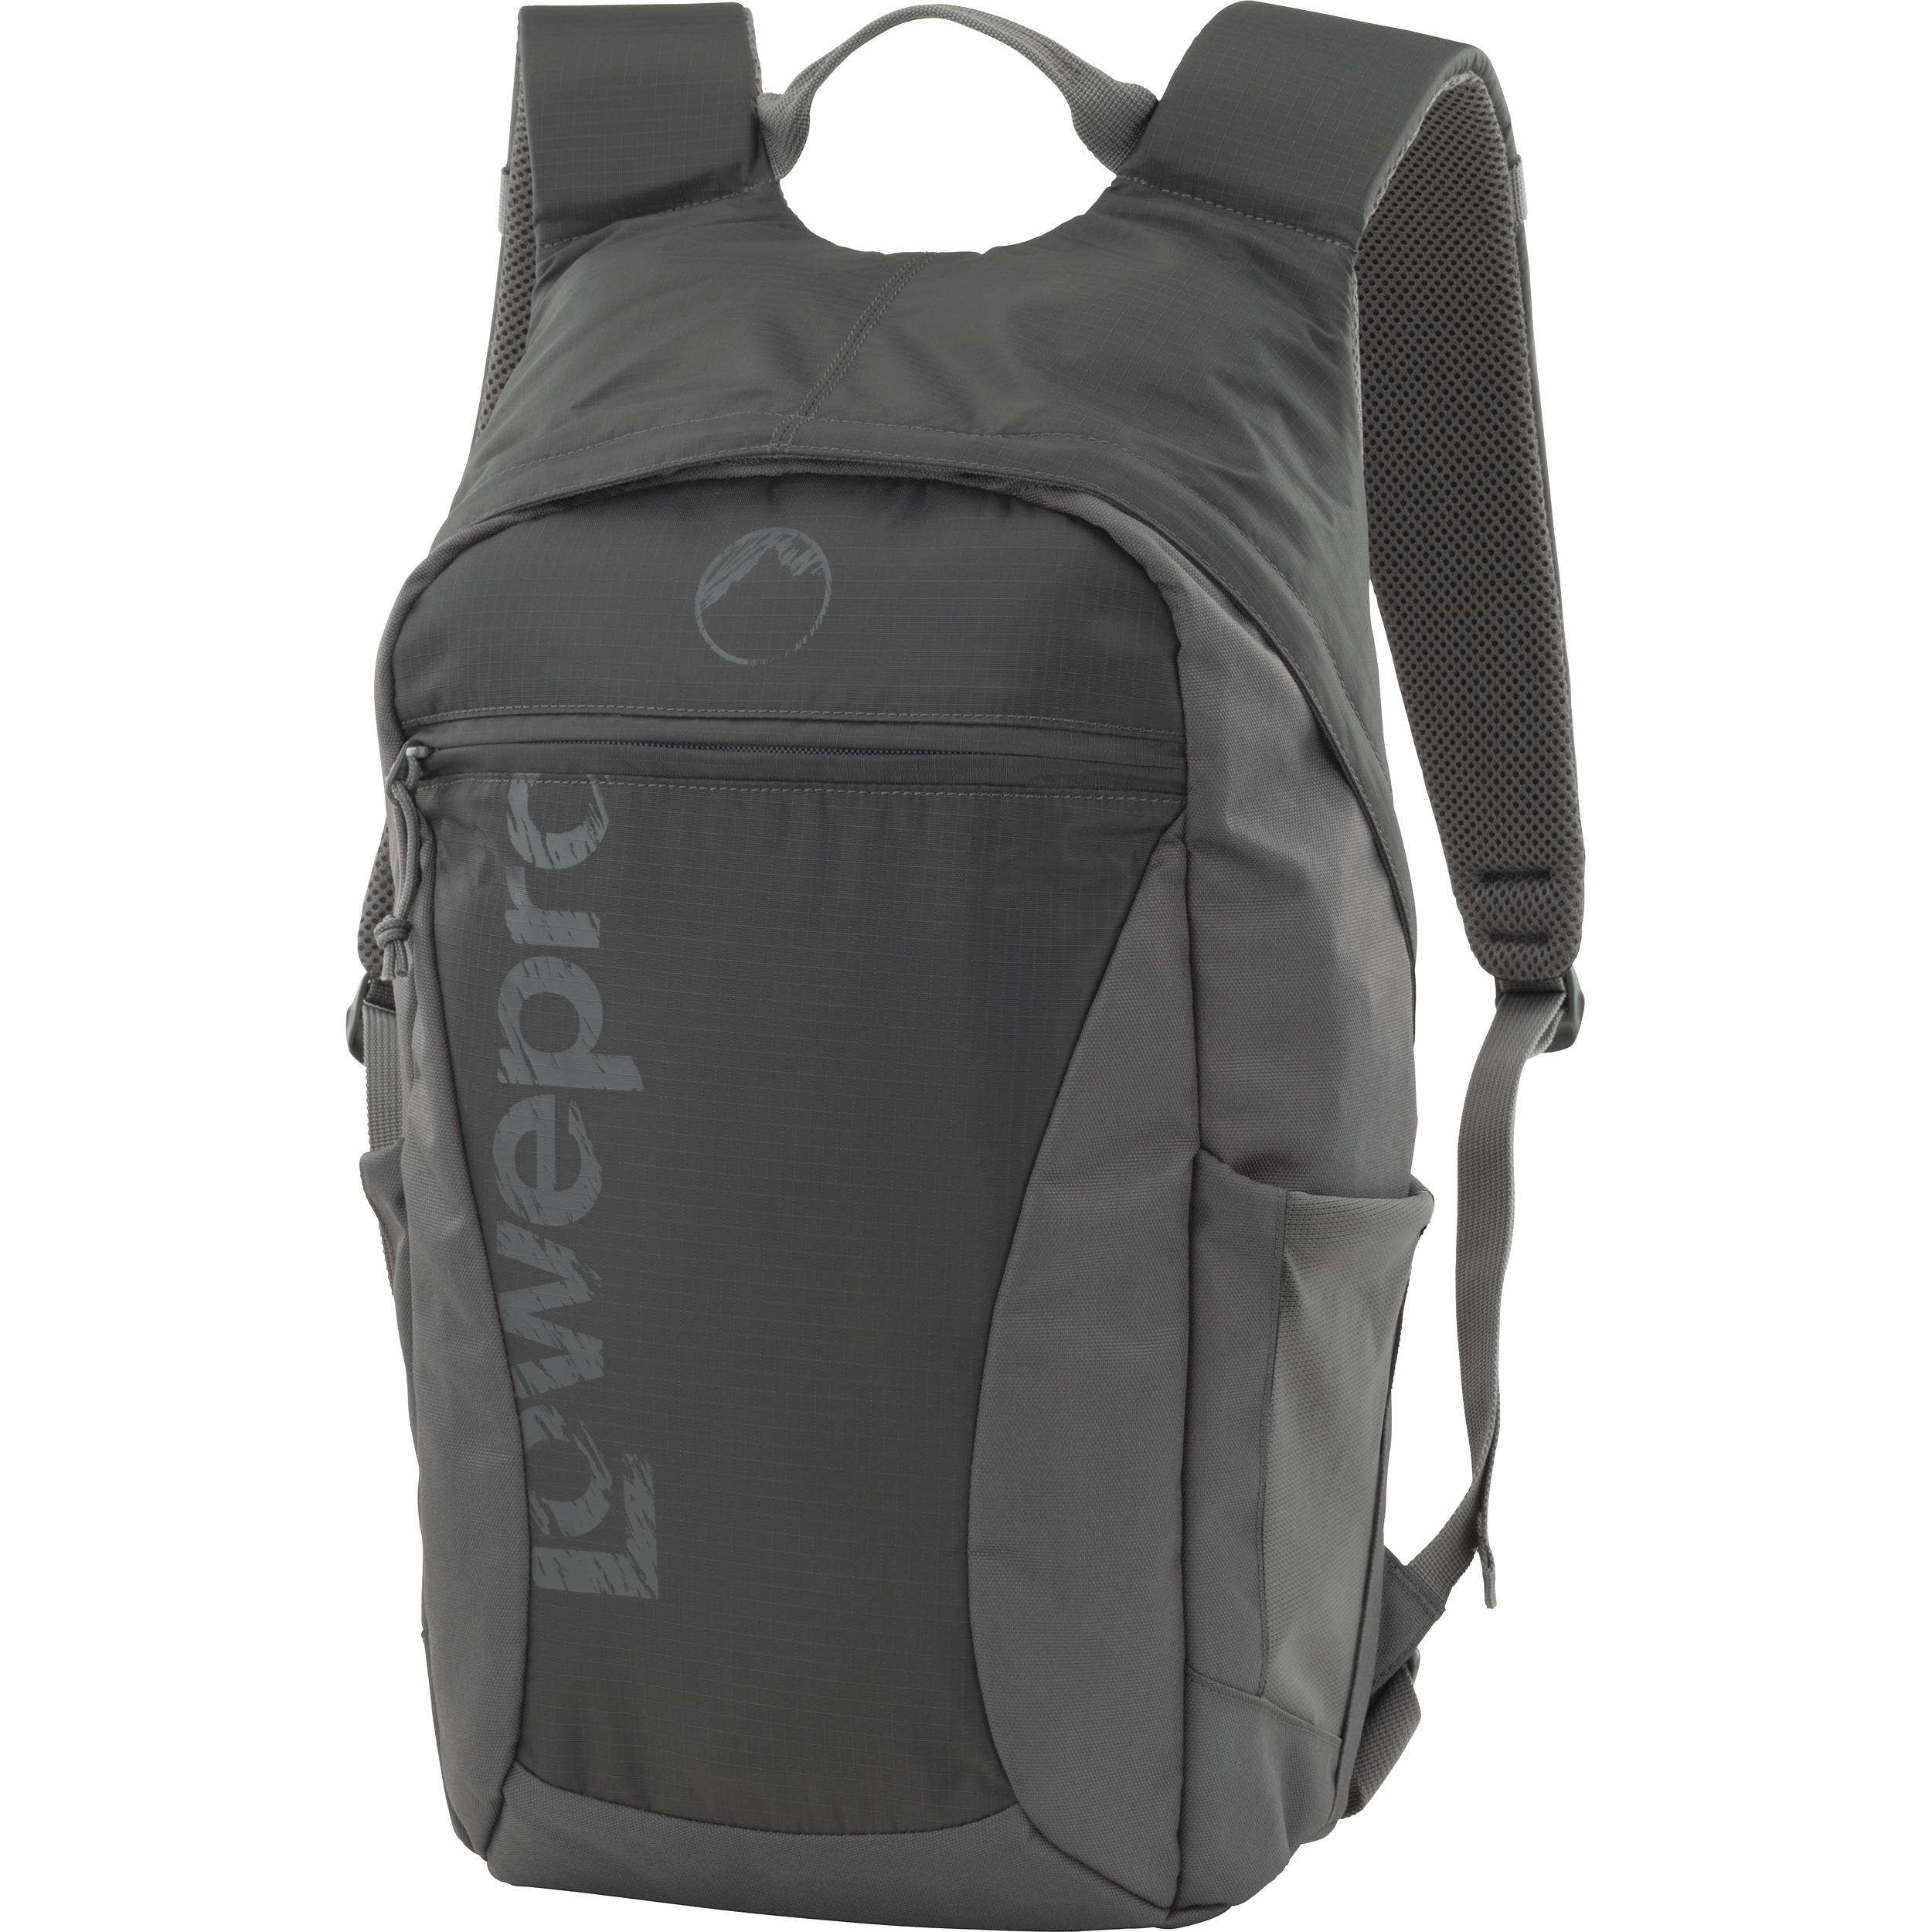 c3d804313fd4 Lowepro Photo Hatchback 16L AW Backpack (Slate Gray) LP36431 B H